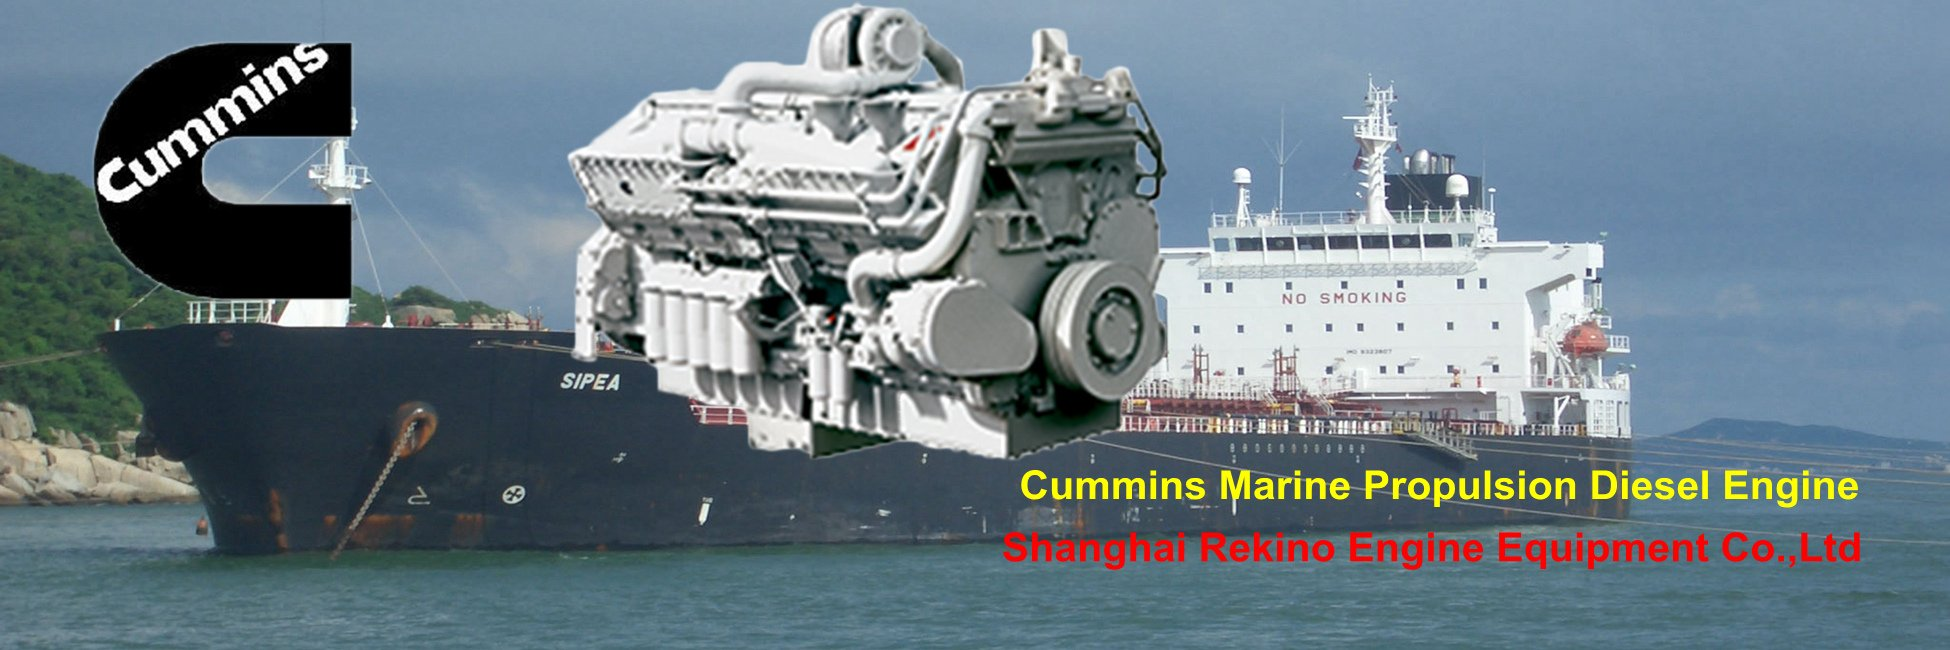 Cummins marine diesel engine Banner